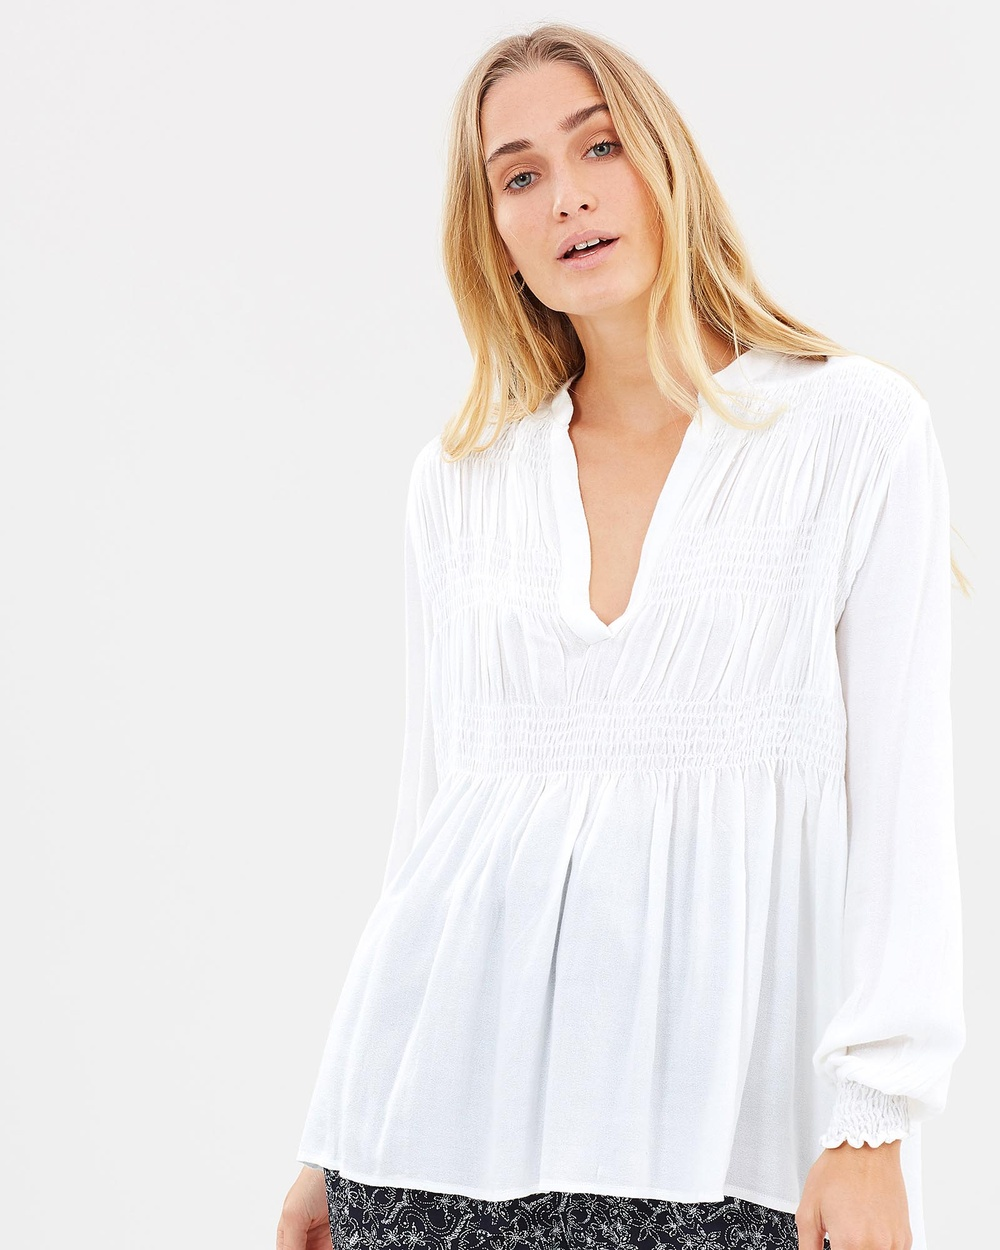 Solito Gathered Shirt Tops White Gathered Shirt